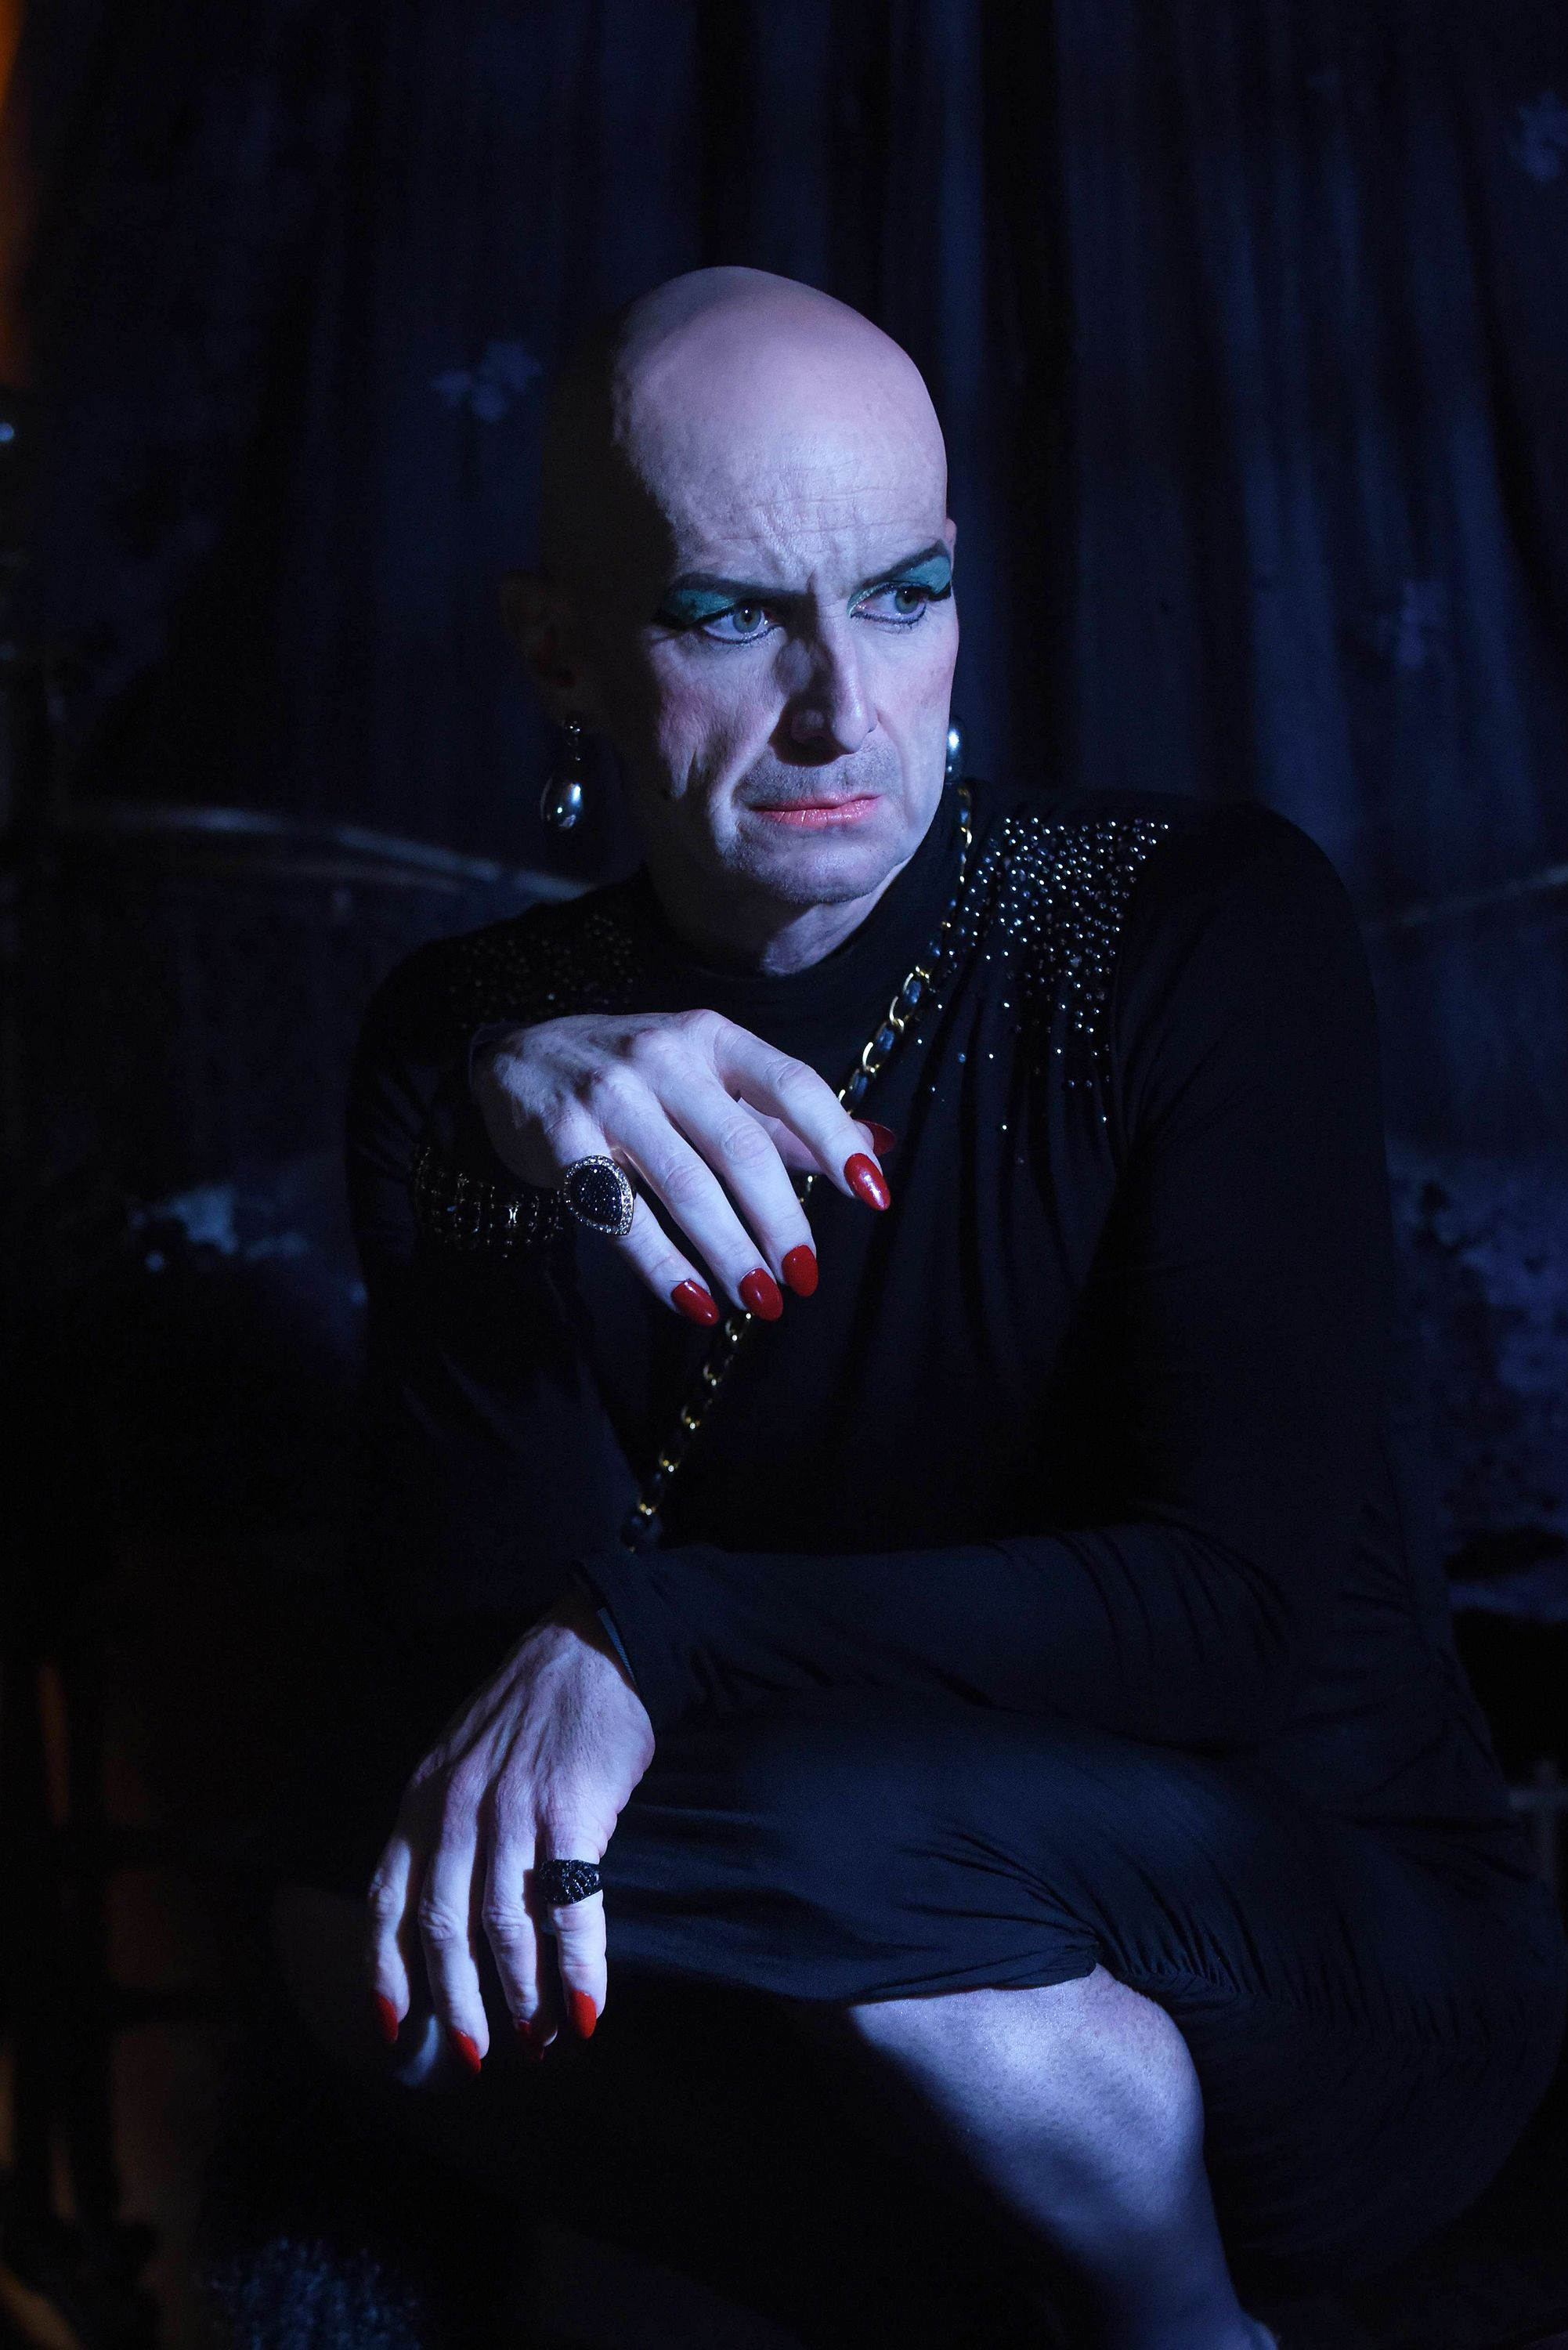 American Horror Story star Denis O'Hare reflects on playing a trans character in season 5's Hotel